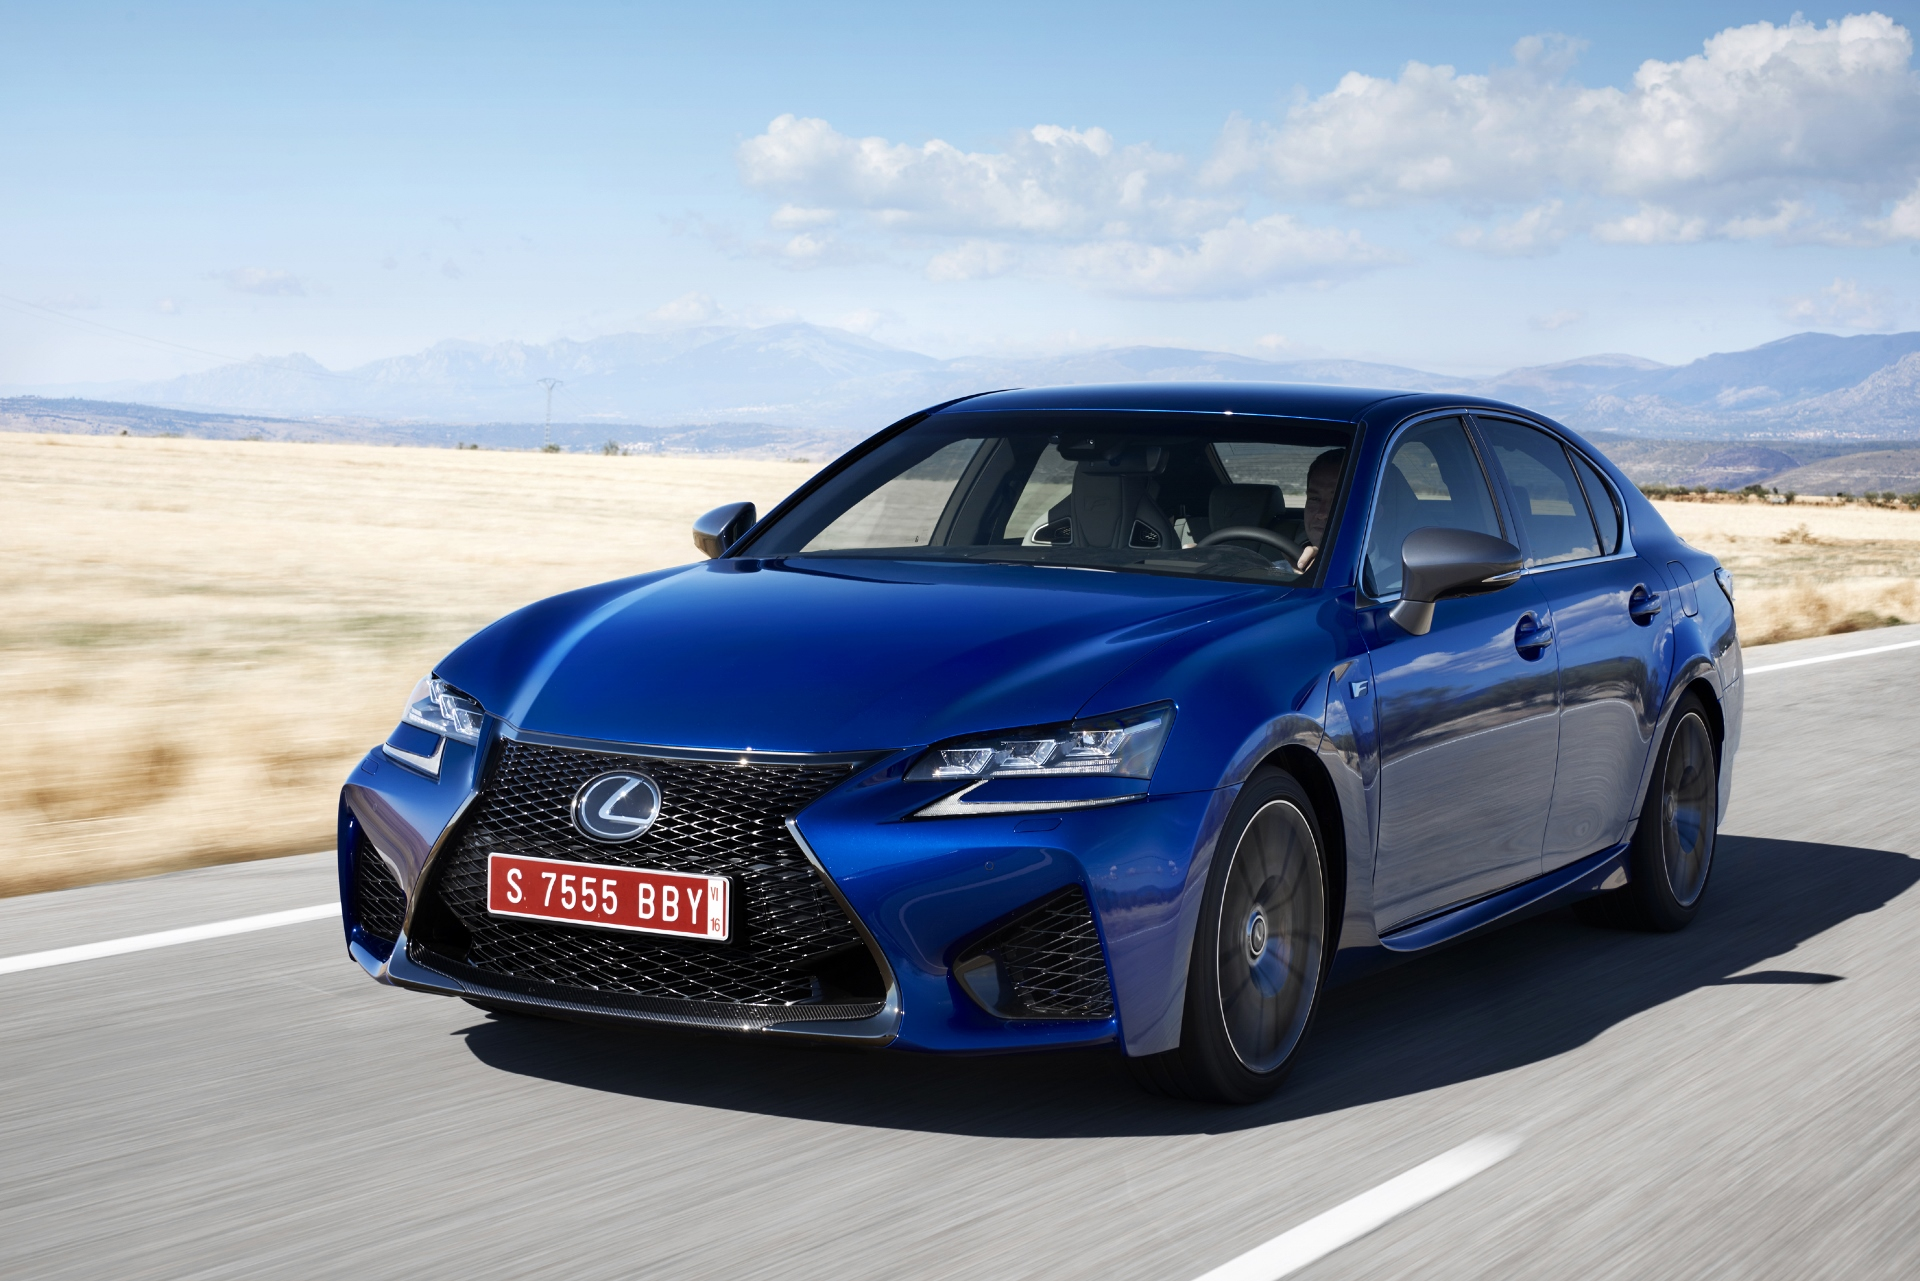 2017 Lexus GS F Review Ratings Specs Prices and s The